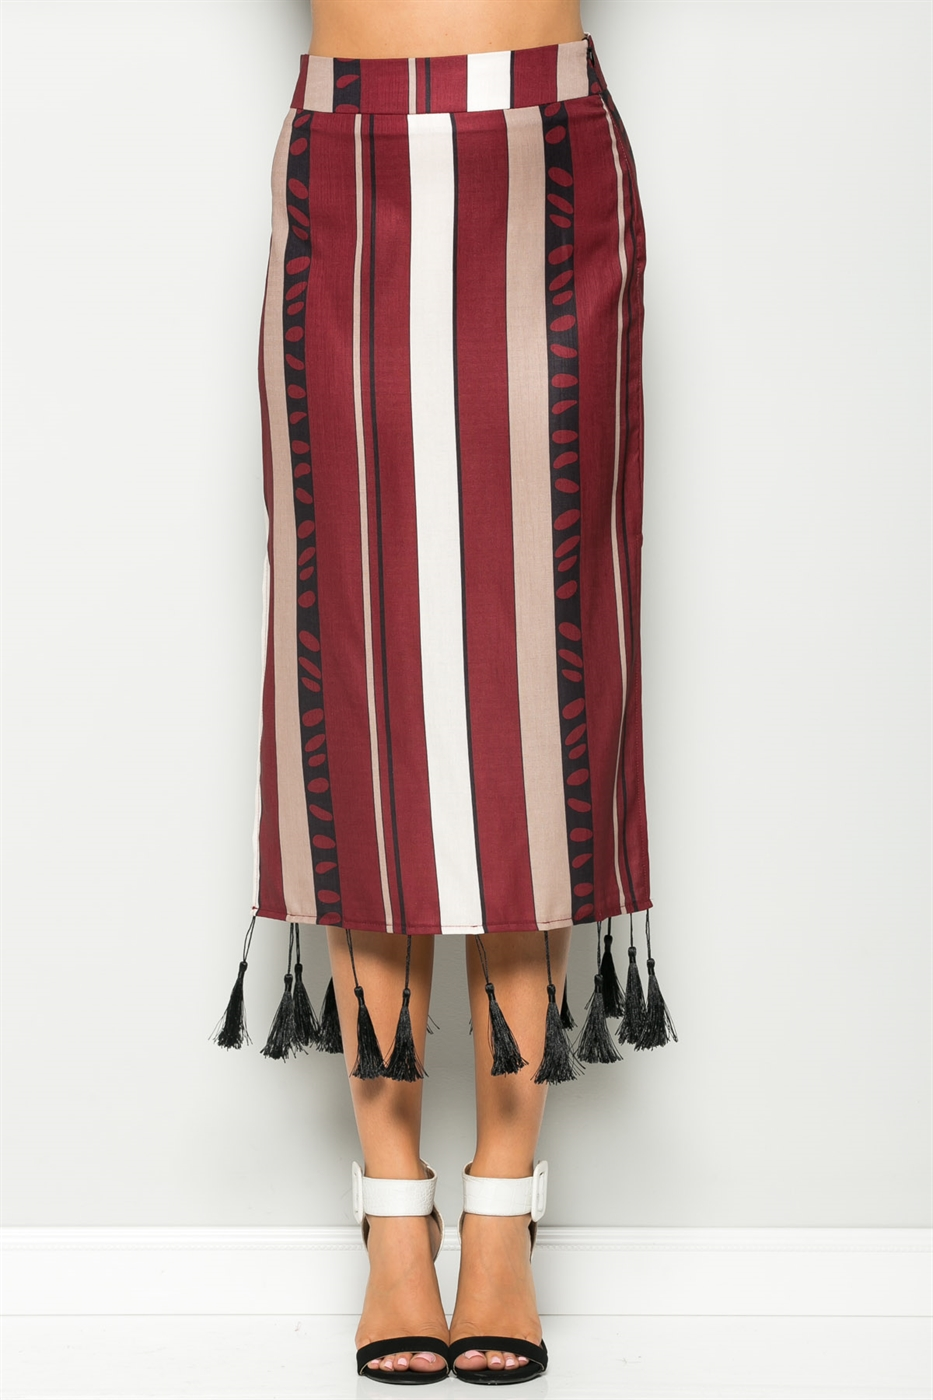 TASSEL BOTTOM STRIPE SKIRT - orangeshine.com